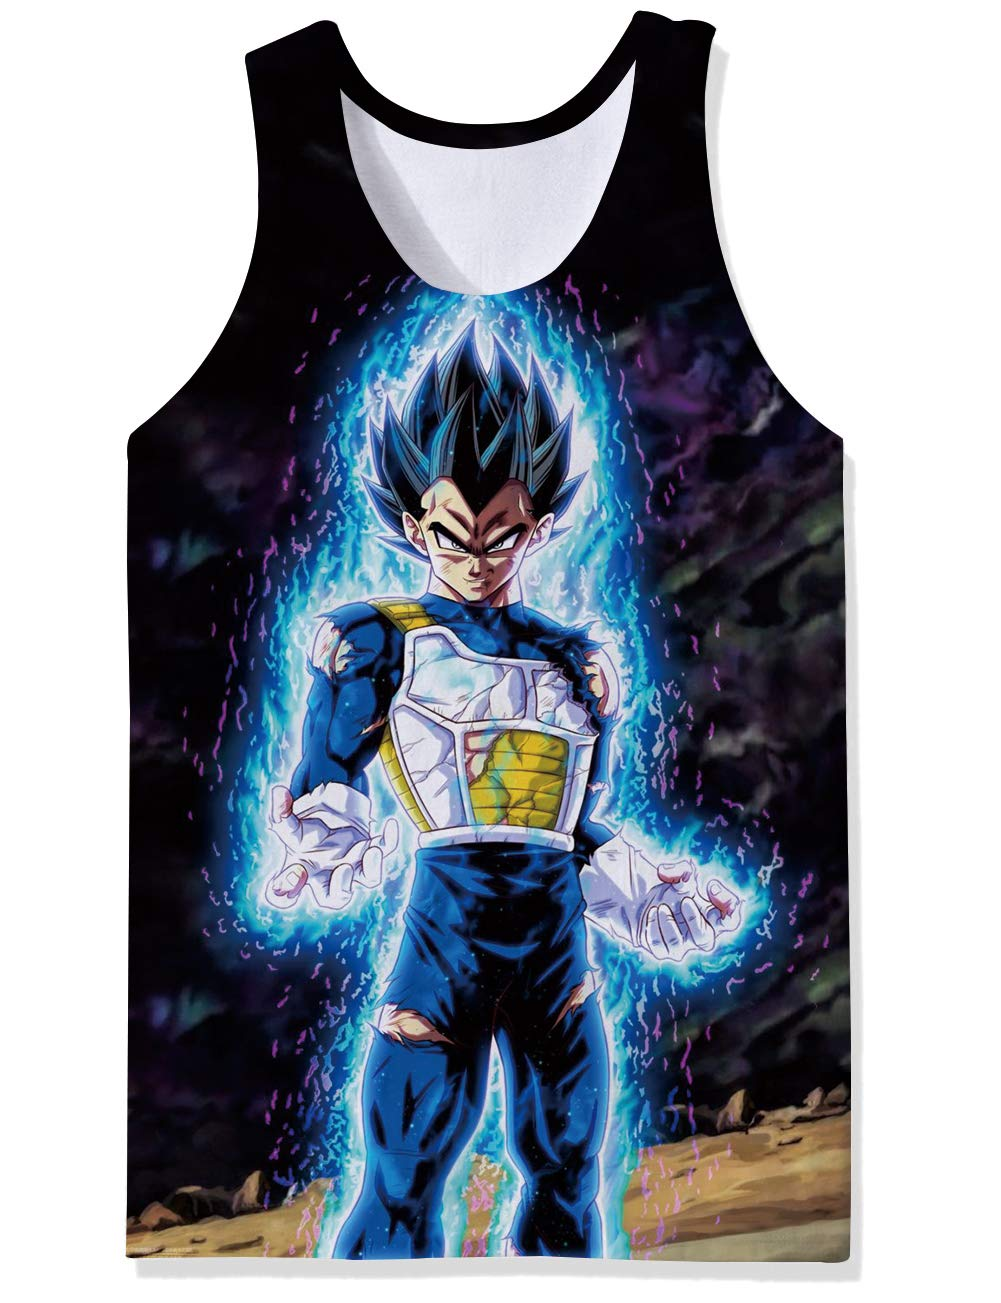 OPCOLV Unisex Sleeveless Yoga Tank Top Anime Colthes Collection O-Neck 3D Graphic T-Shirt Funny Running Wear for Summer Size L by OPCOLV